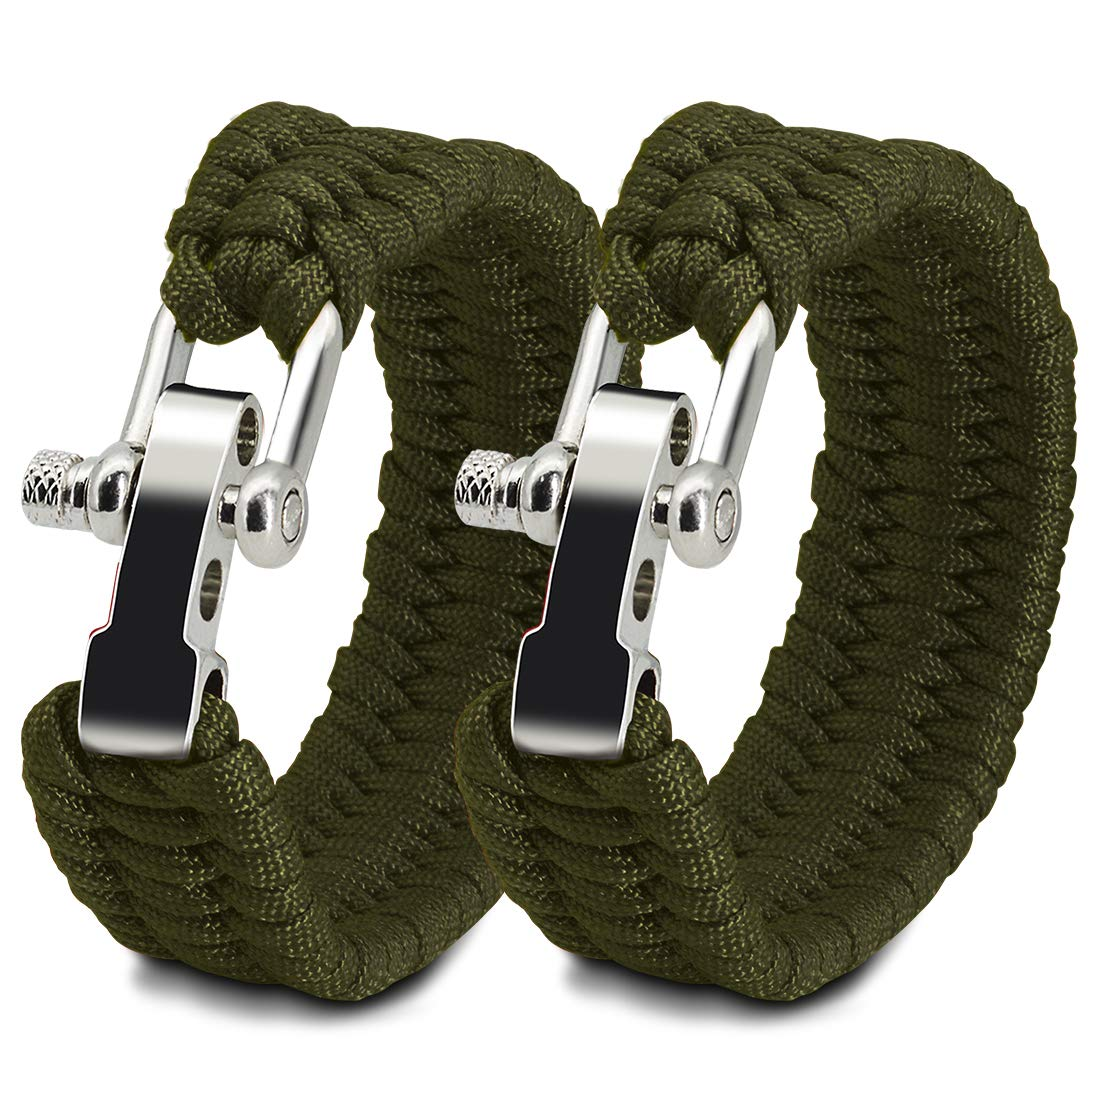 NVioAsport Paracord Survival Bracelet with Adjustable Stainless Steel D Shackle Suitable for 7-9 Wrists